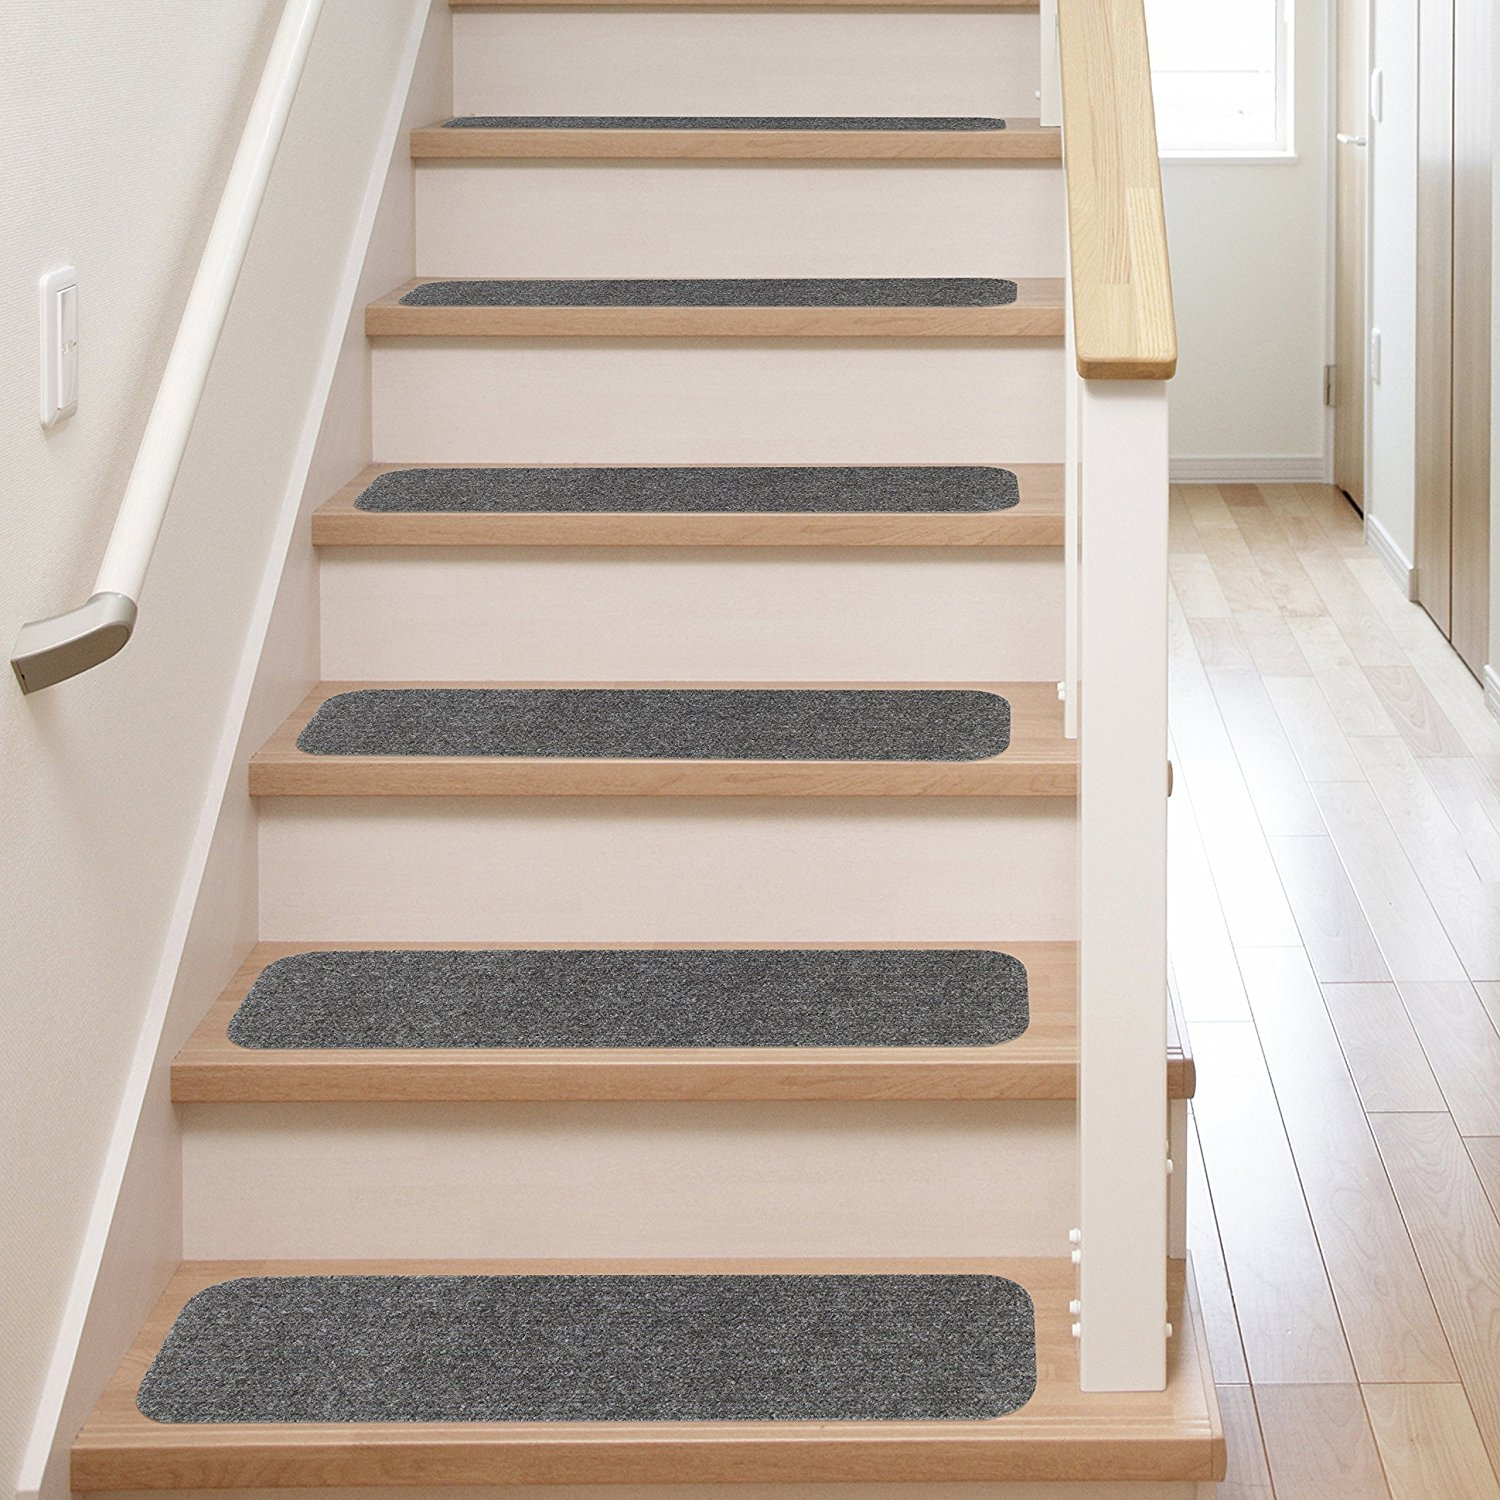 Amazon Best Sellers Best Staircase Step Treads With Stair Treads And Matching Rugs (Image 1 of 15)